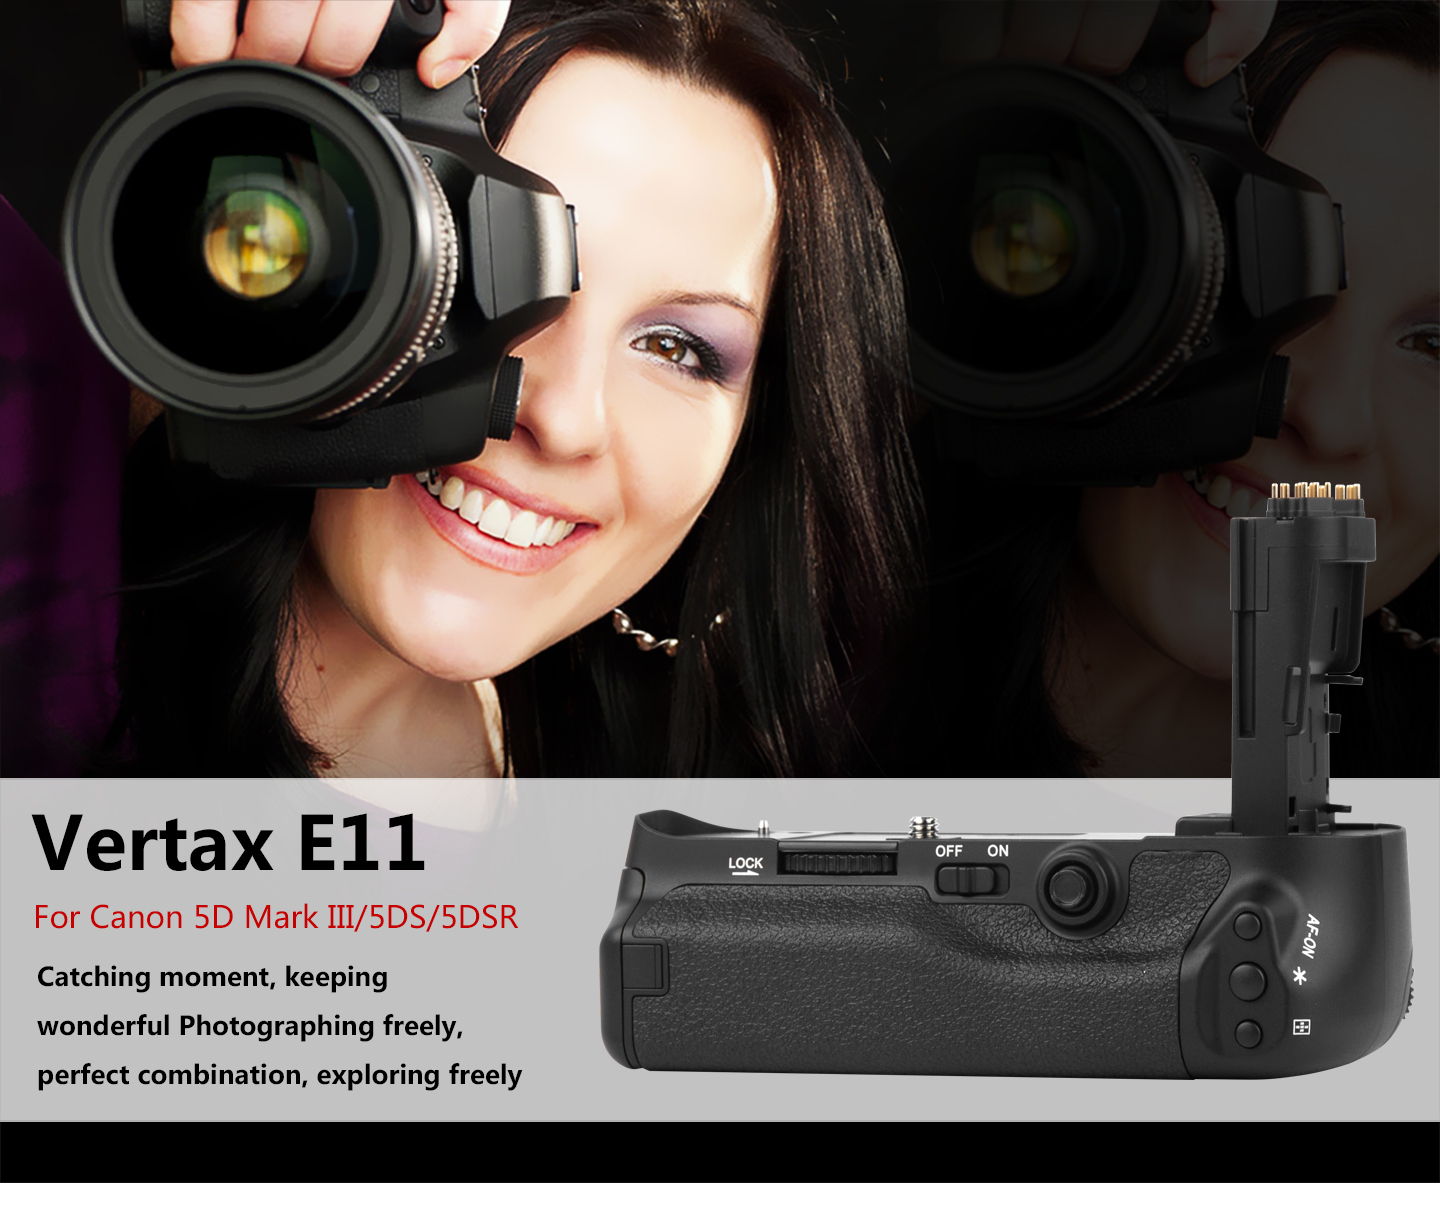 Vertax E11 For Canon 55D Mark III/5DS/5DSR